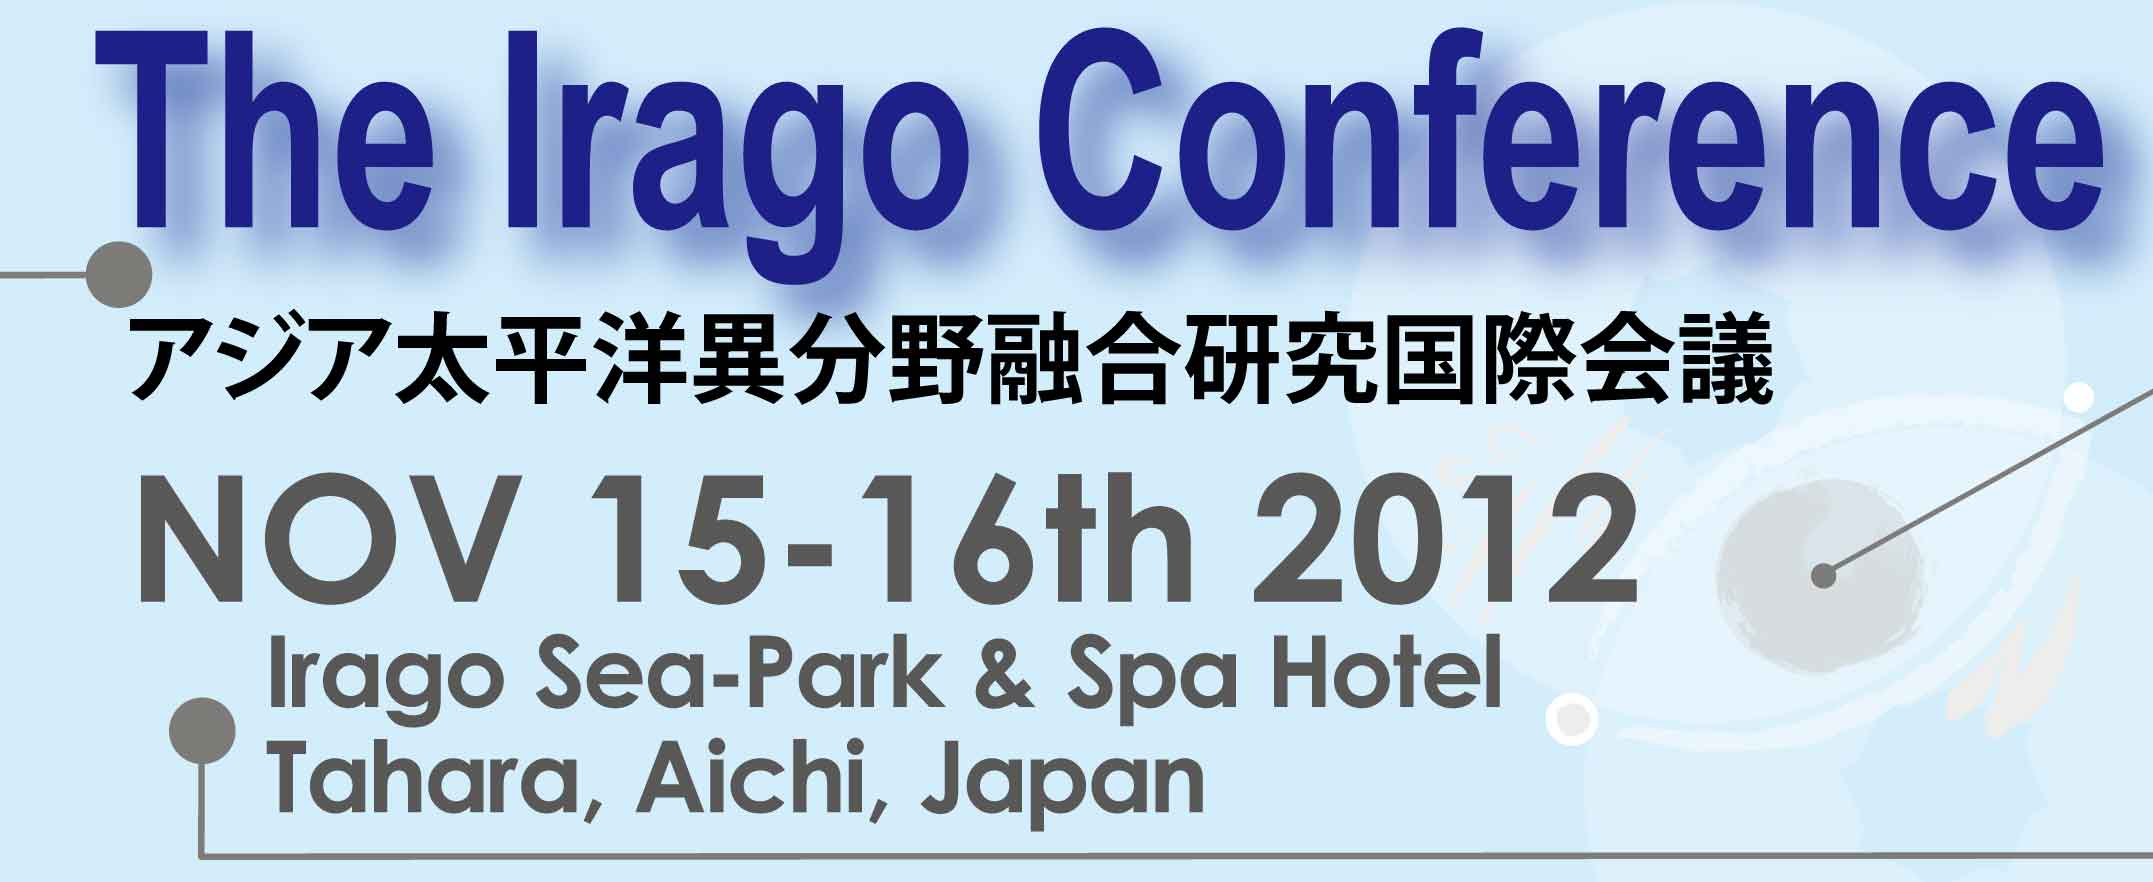 Link to The Irago Conference 2012